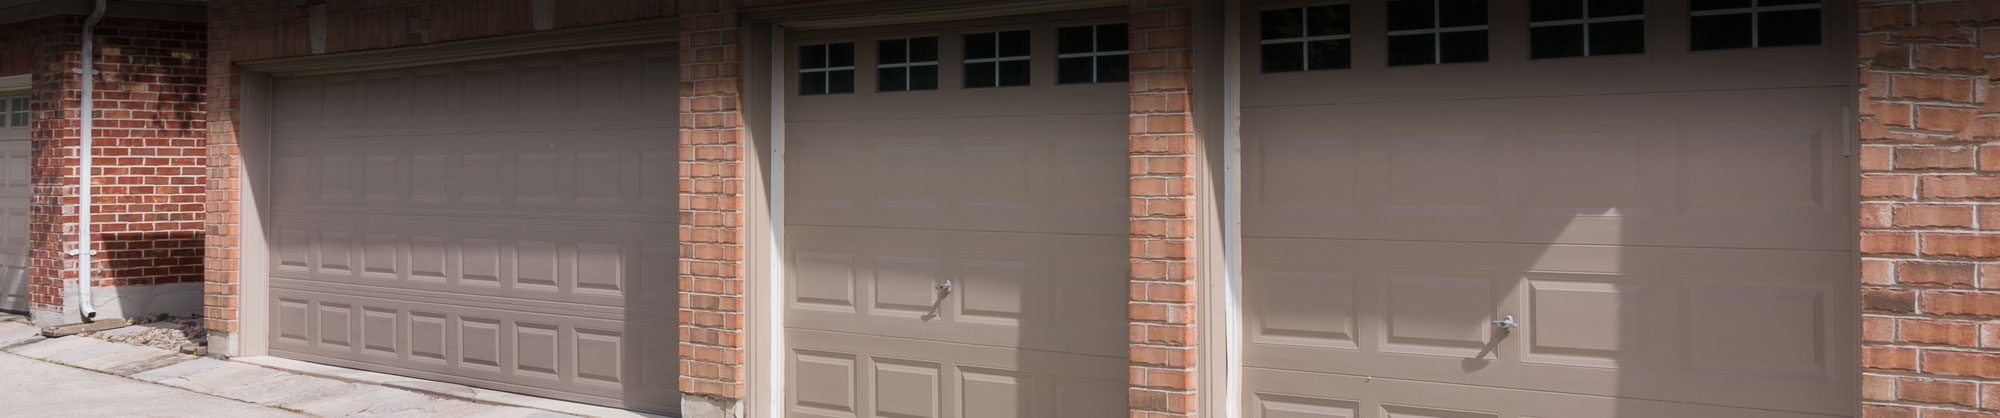 Garage Doors For Summers County